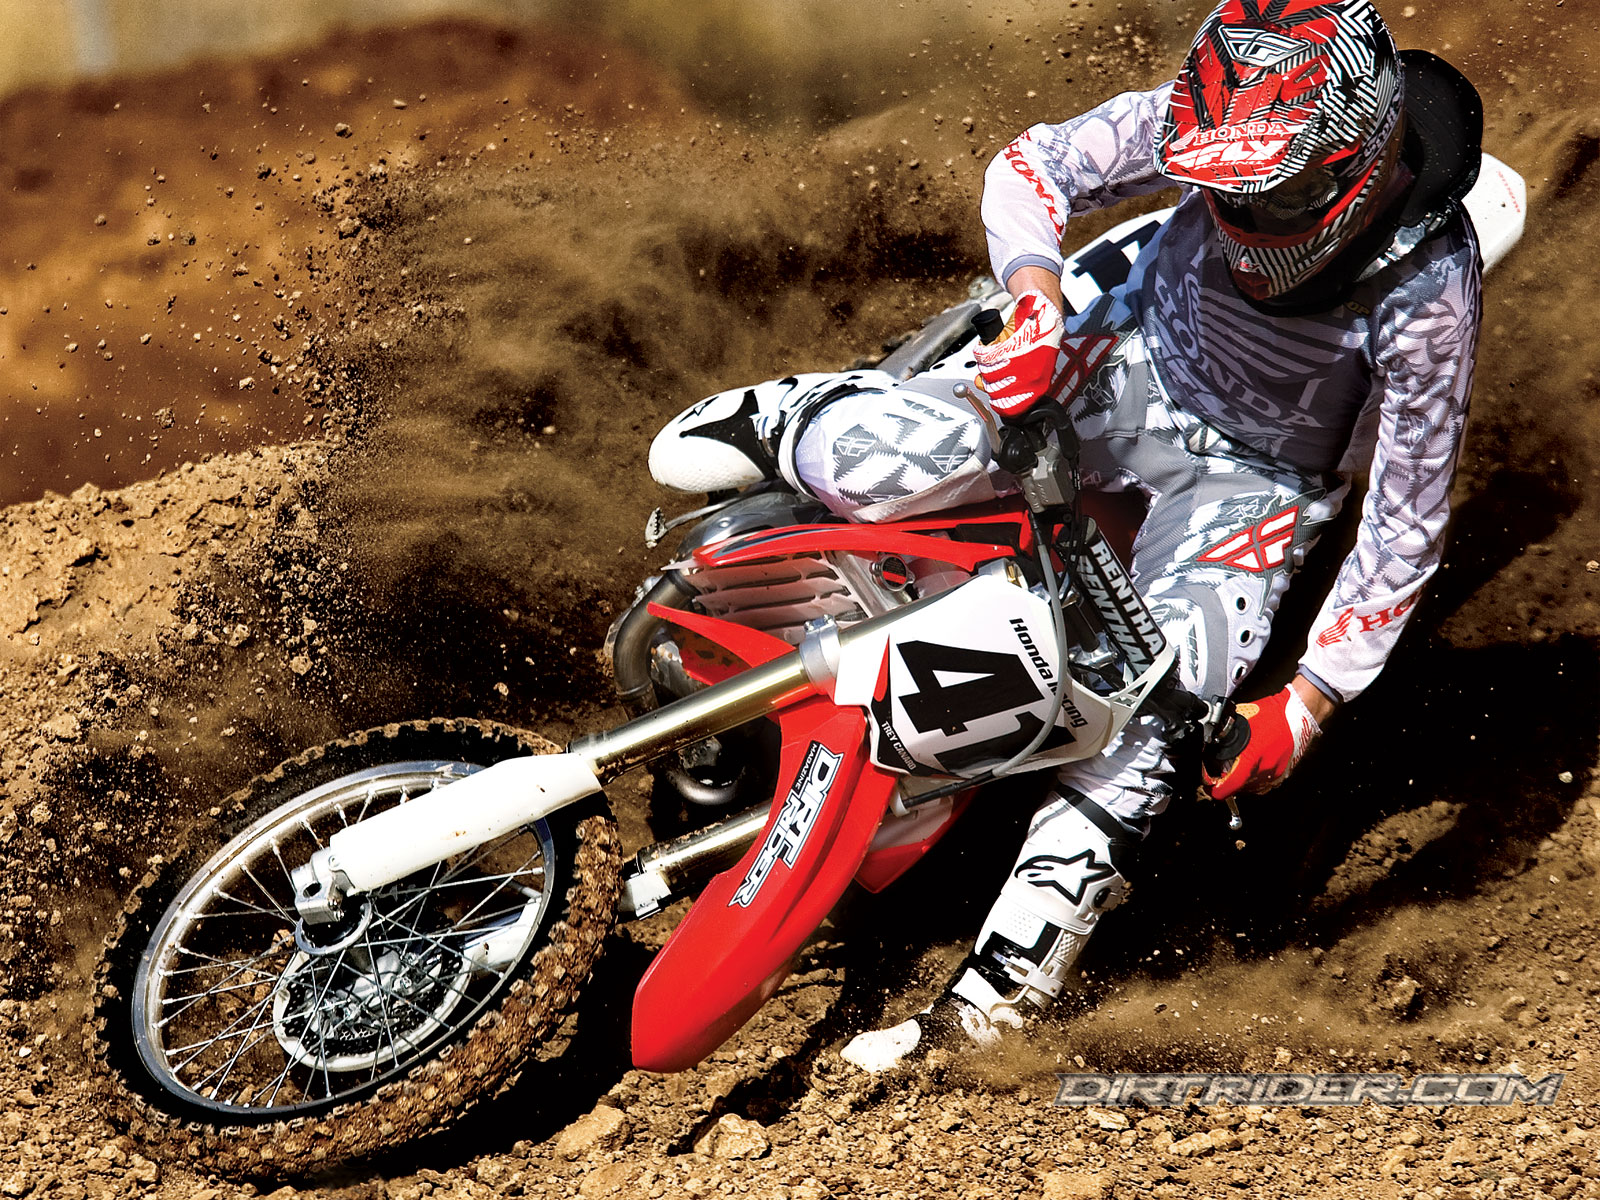 dirt bikes hd wallpapers wallpaper202